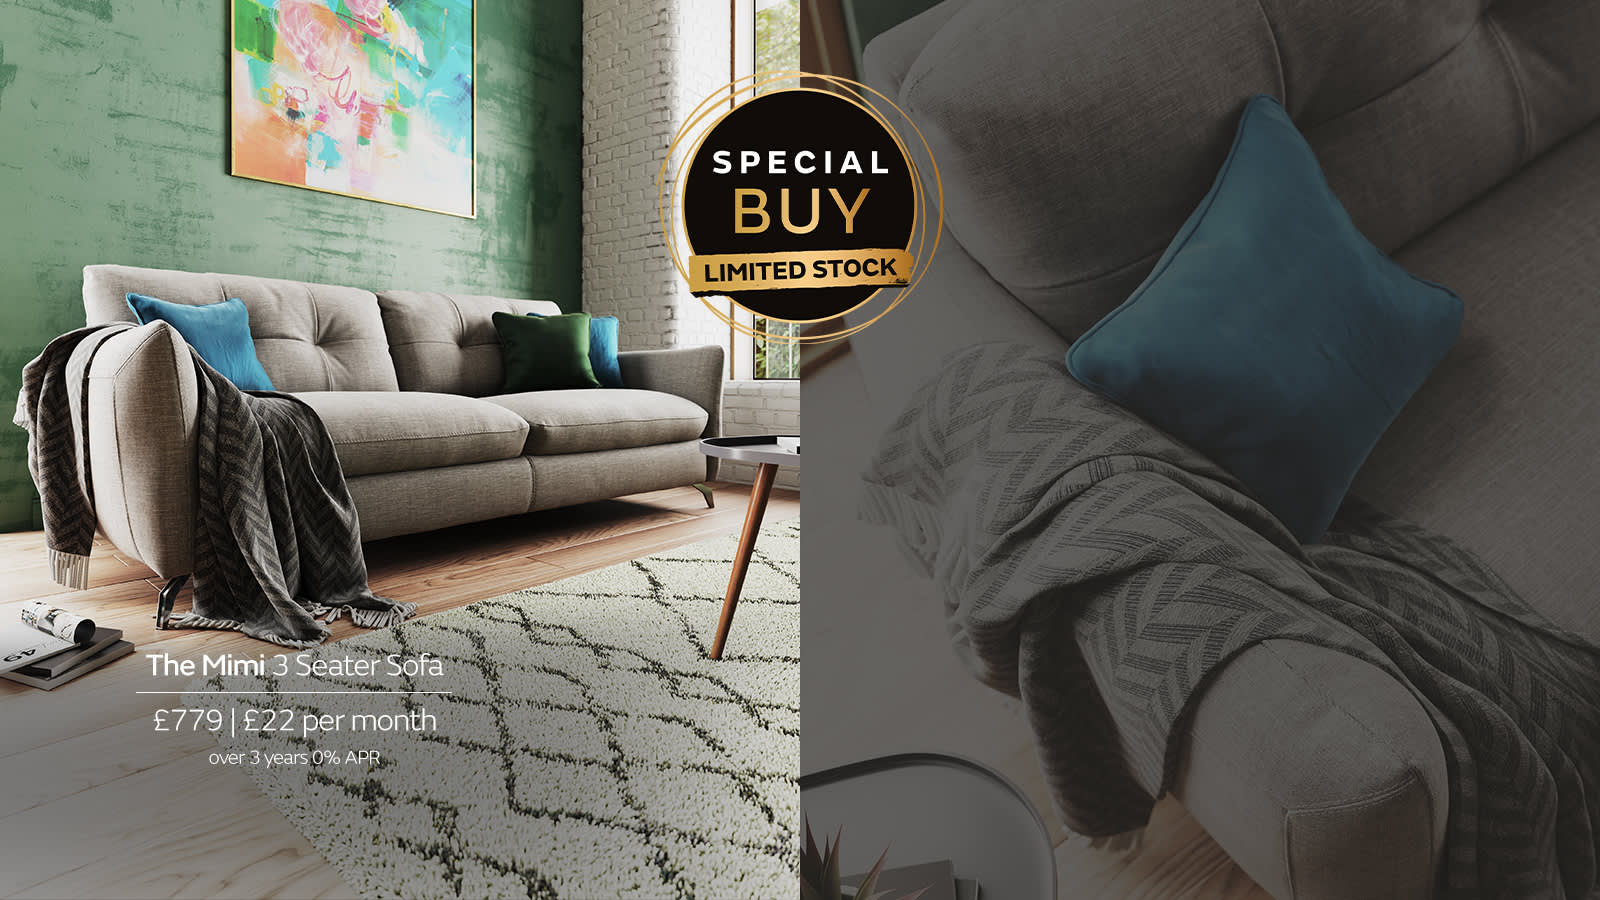 Sofology Mimi special buy sofa in grey